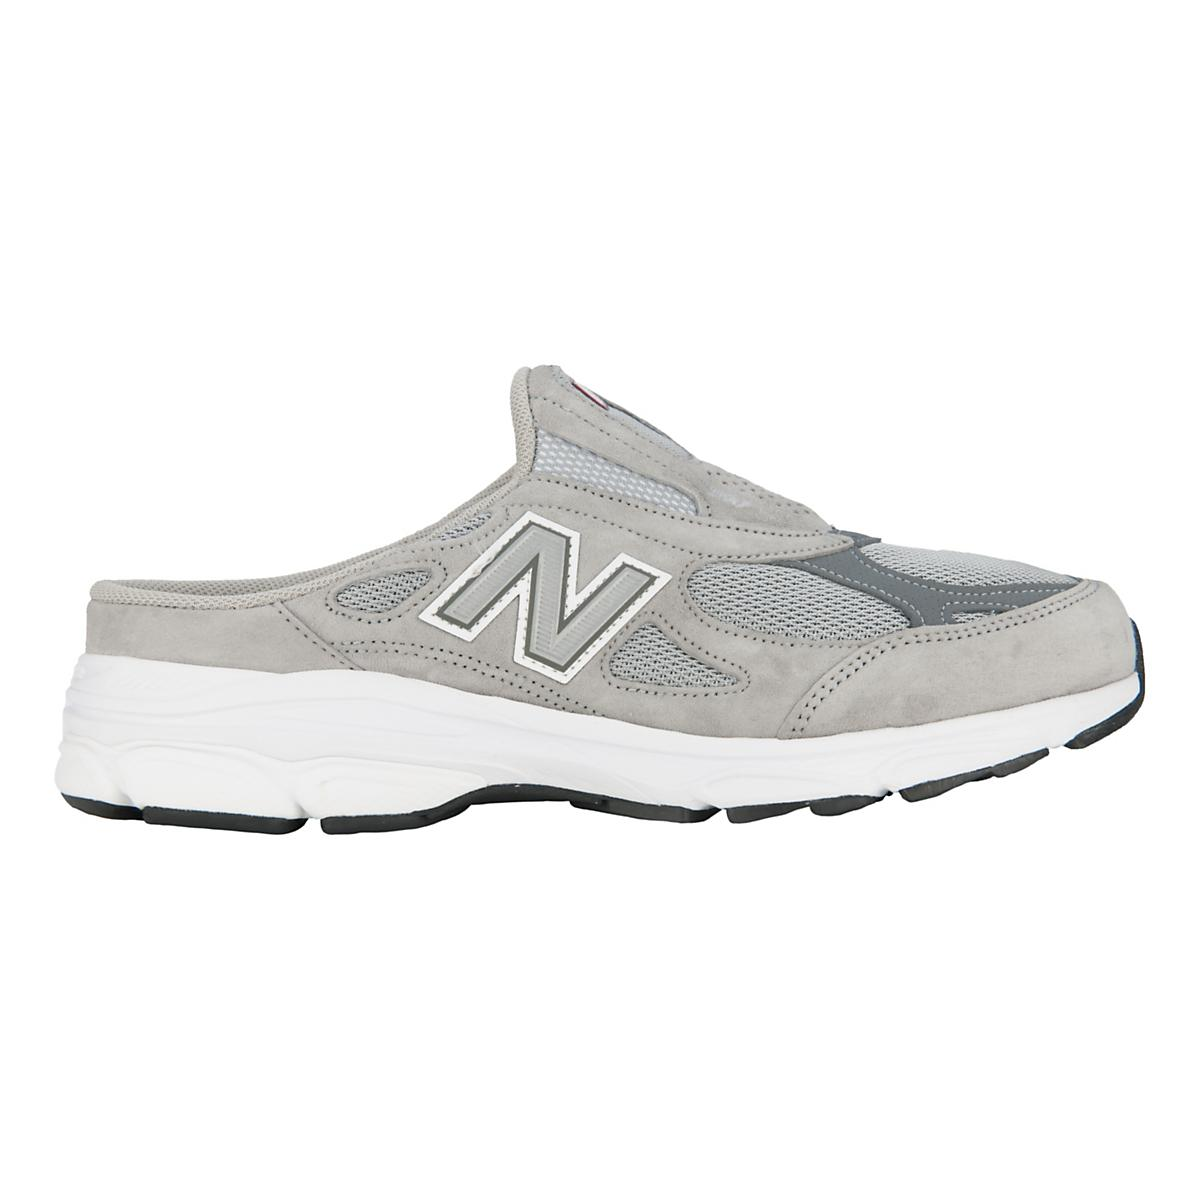 sale retailer c9249 5f050 Men's 990v3 Slip-On